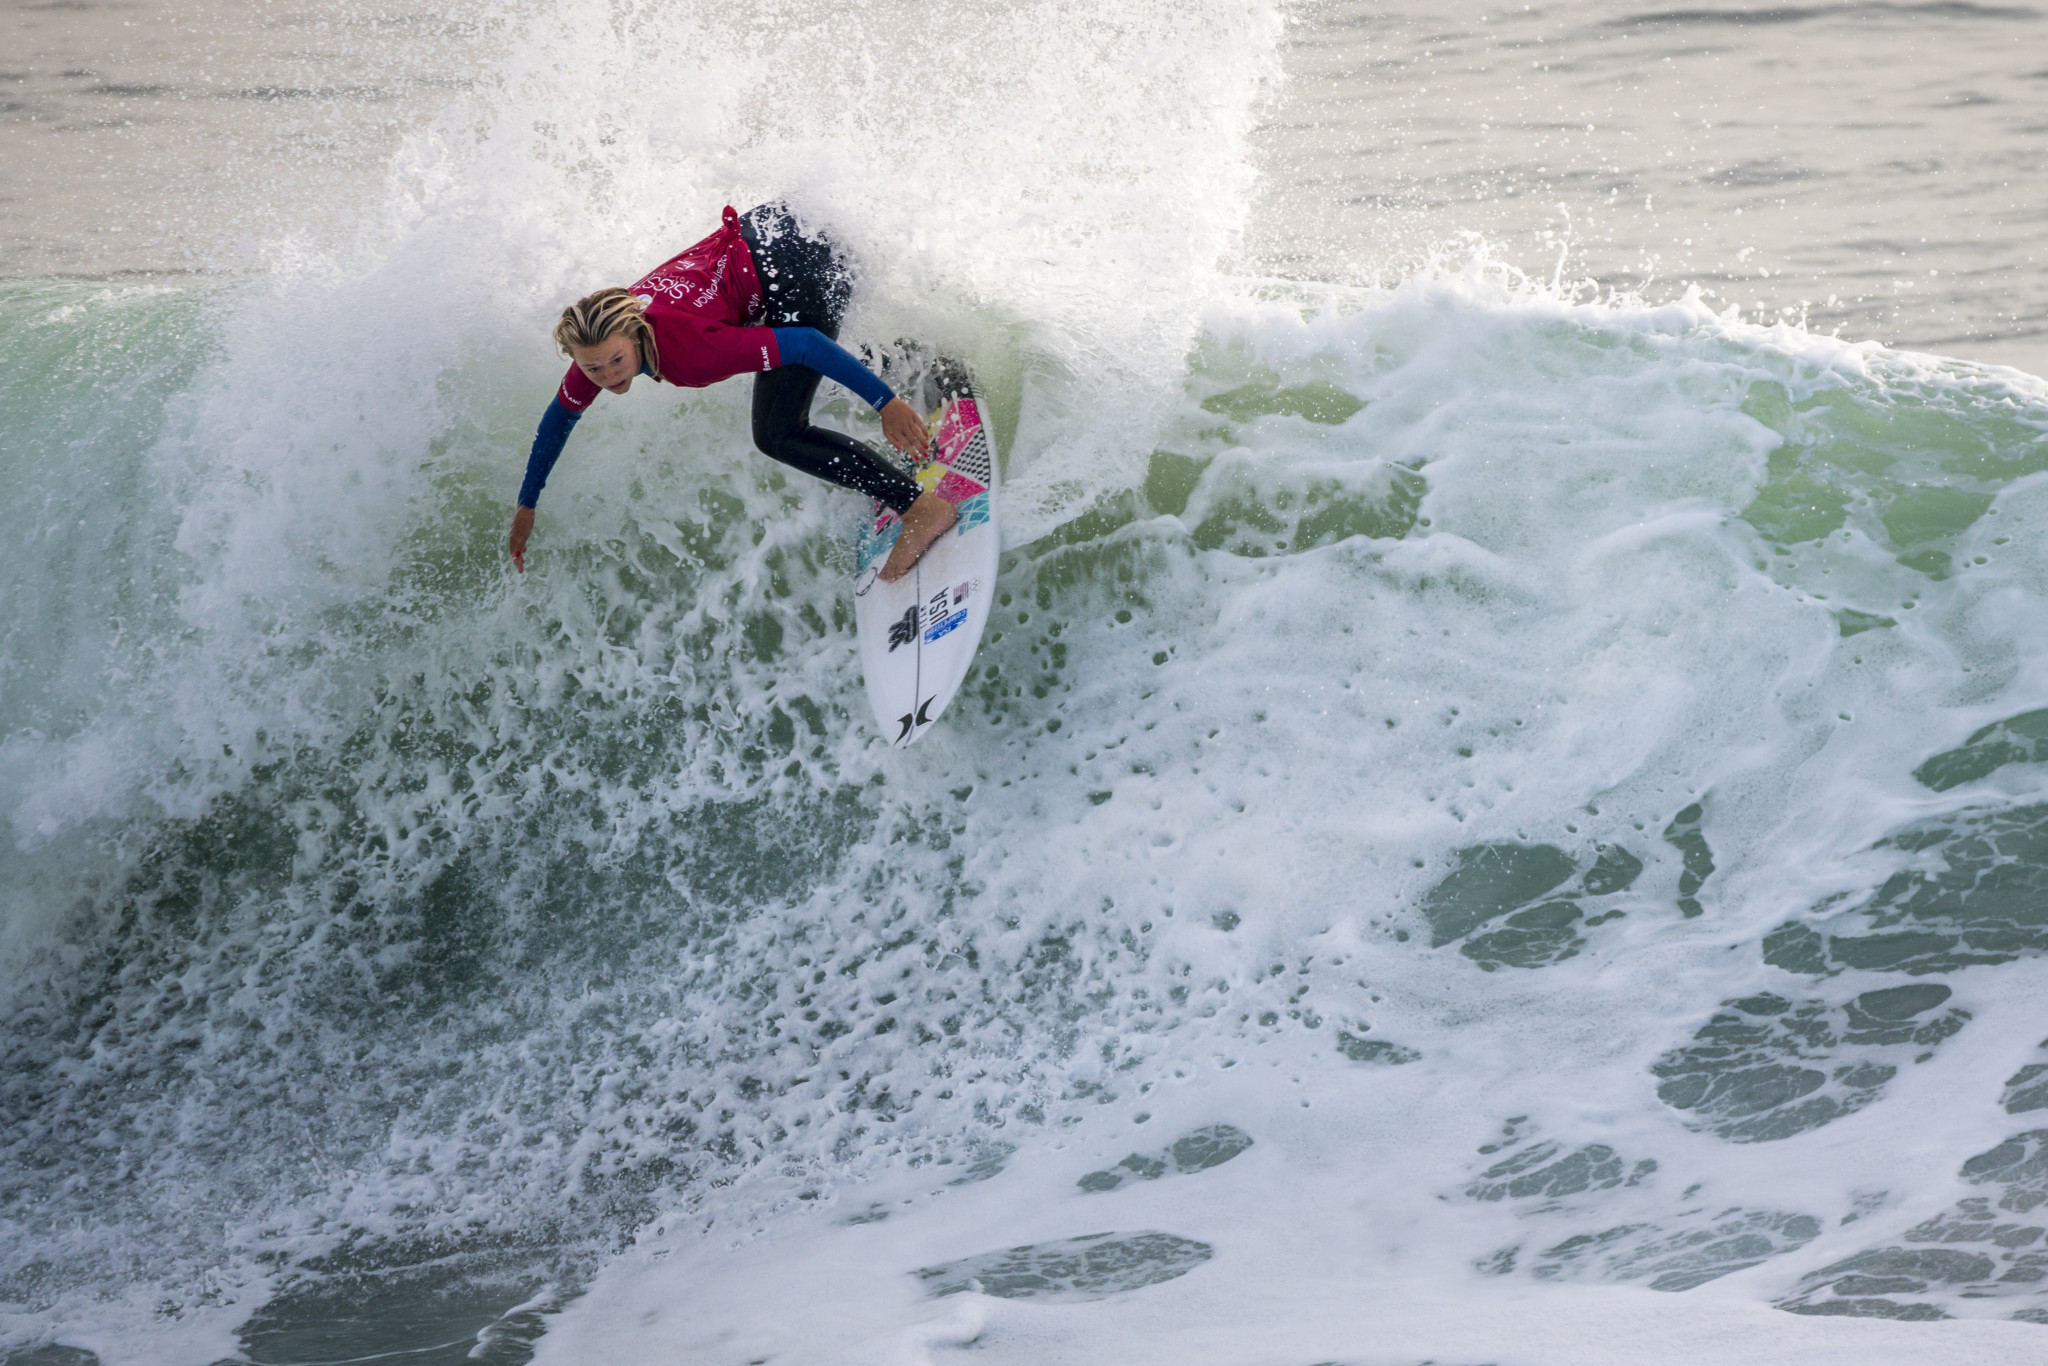 Kirra Pinkerton from the United States was one of today's stand-out performers ©ISA